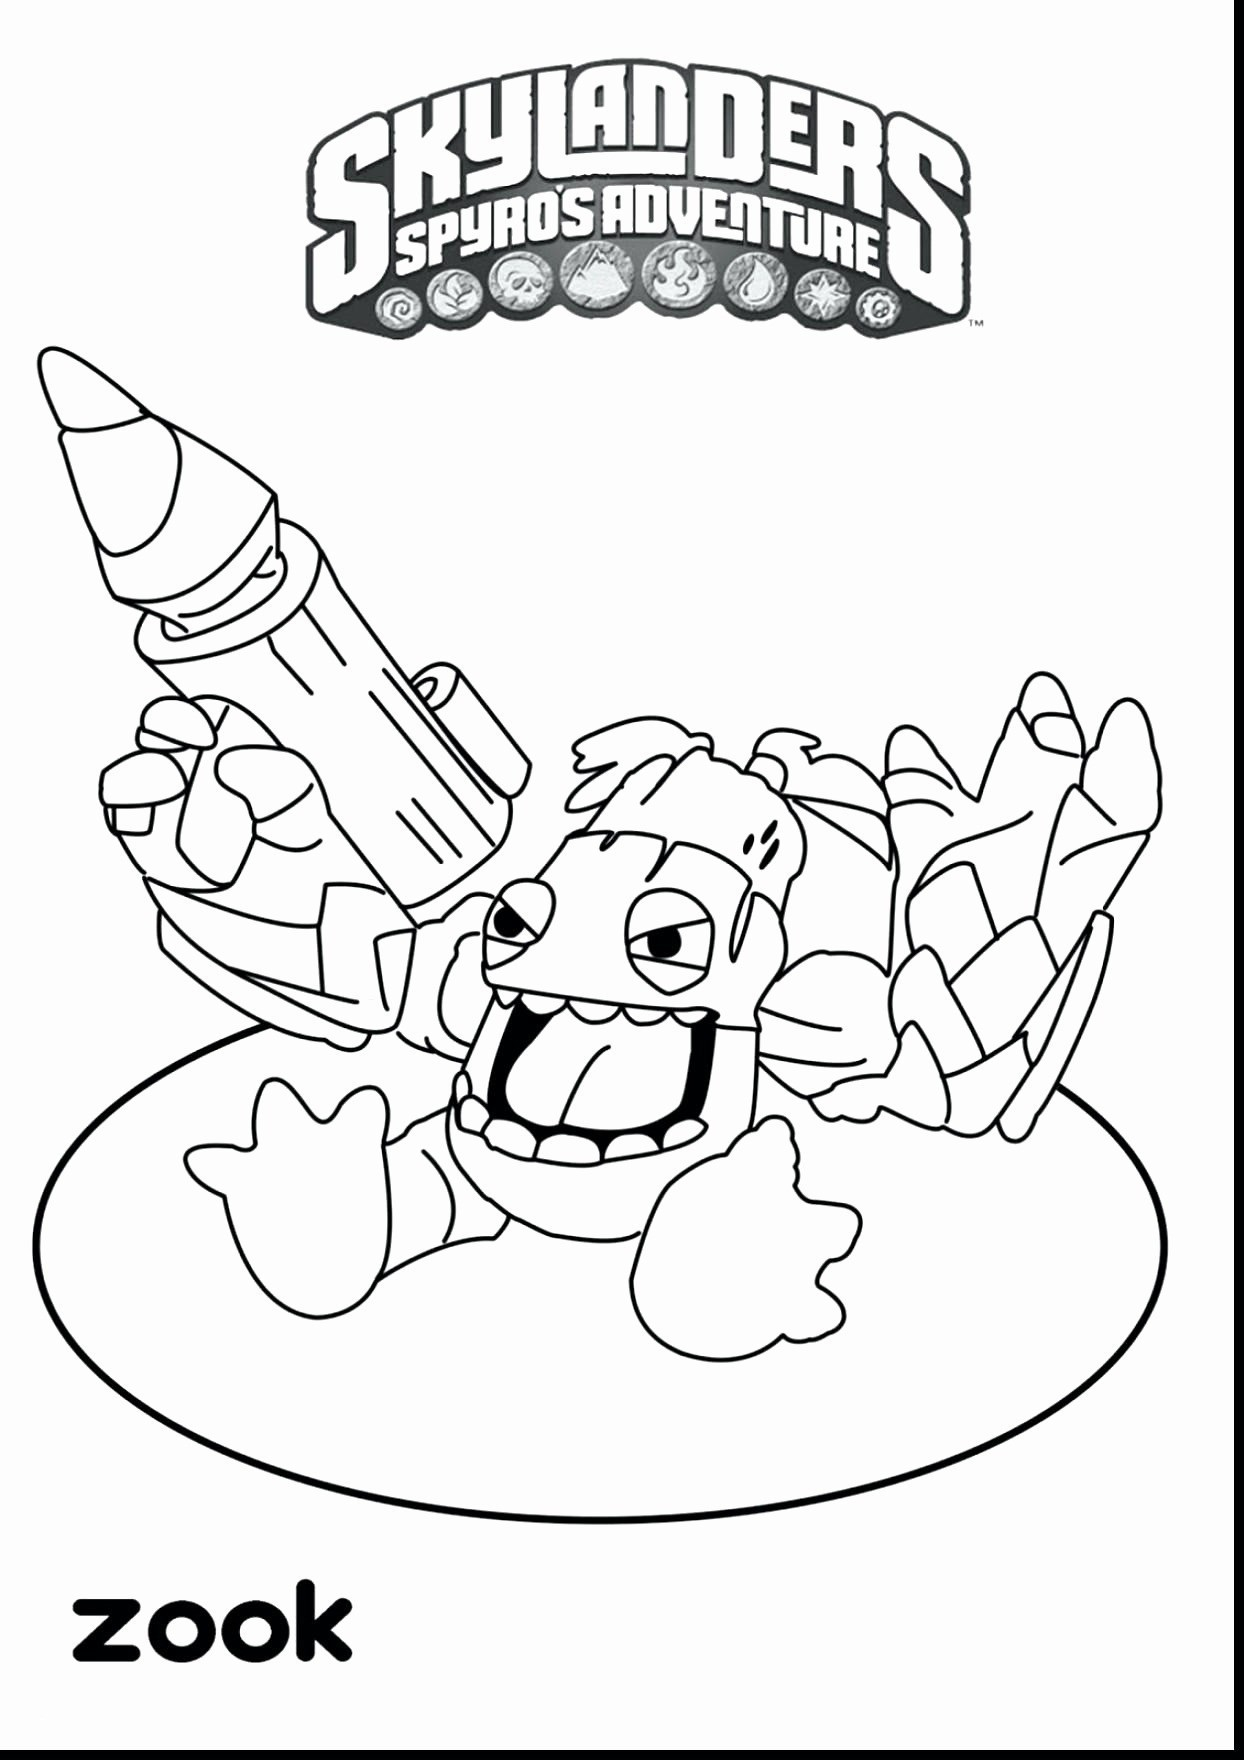 coloring pages i can print Collection-Pages Brilliant Easy to Draw Instruments Home Coloring Pages Best Color Sheet 0d 11-t